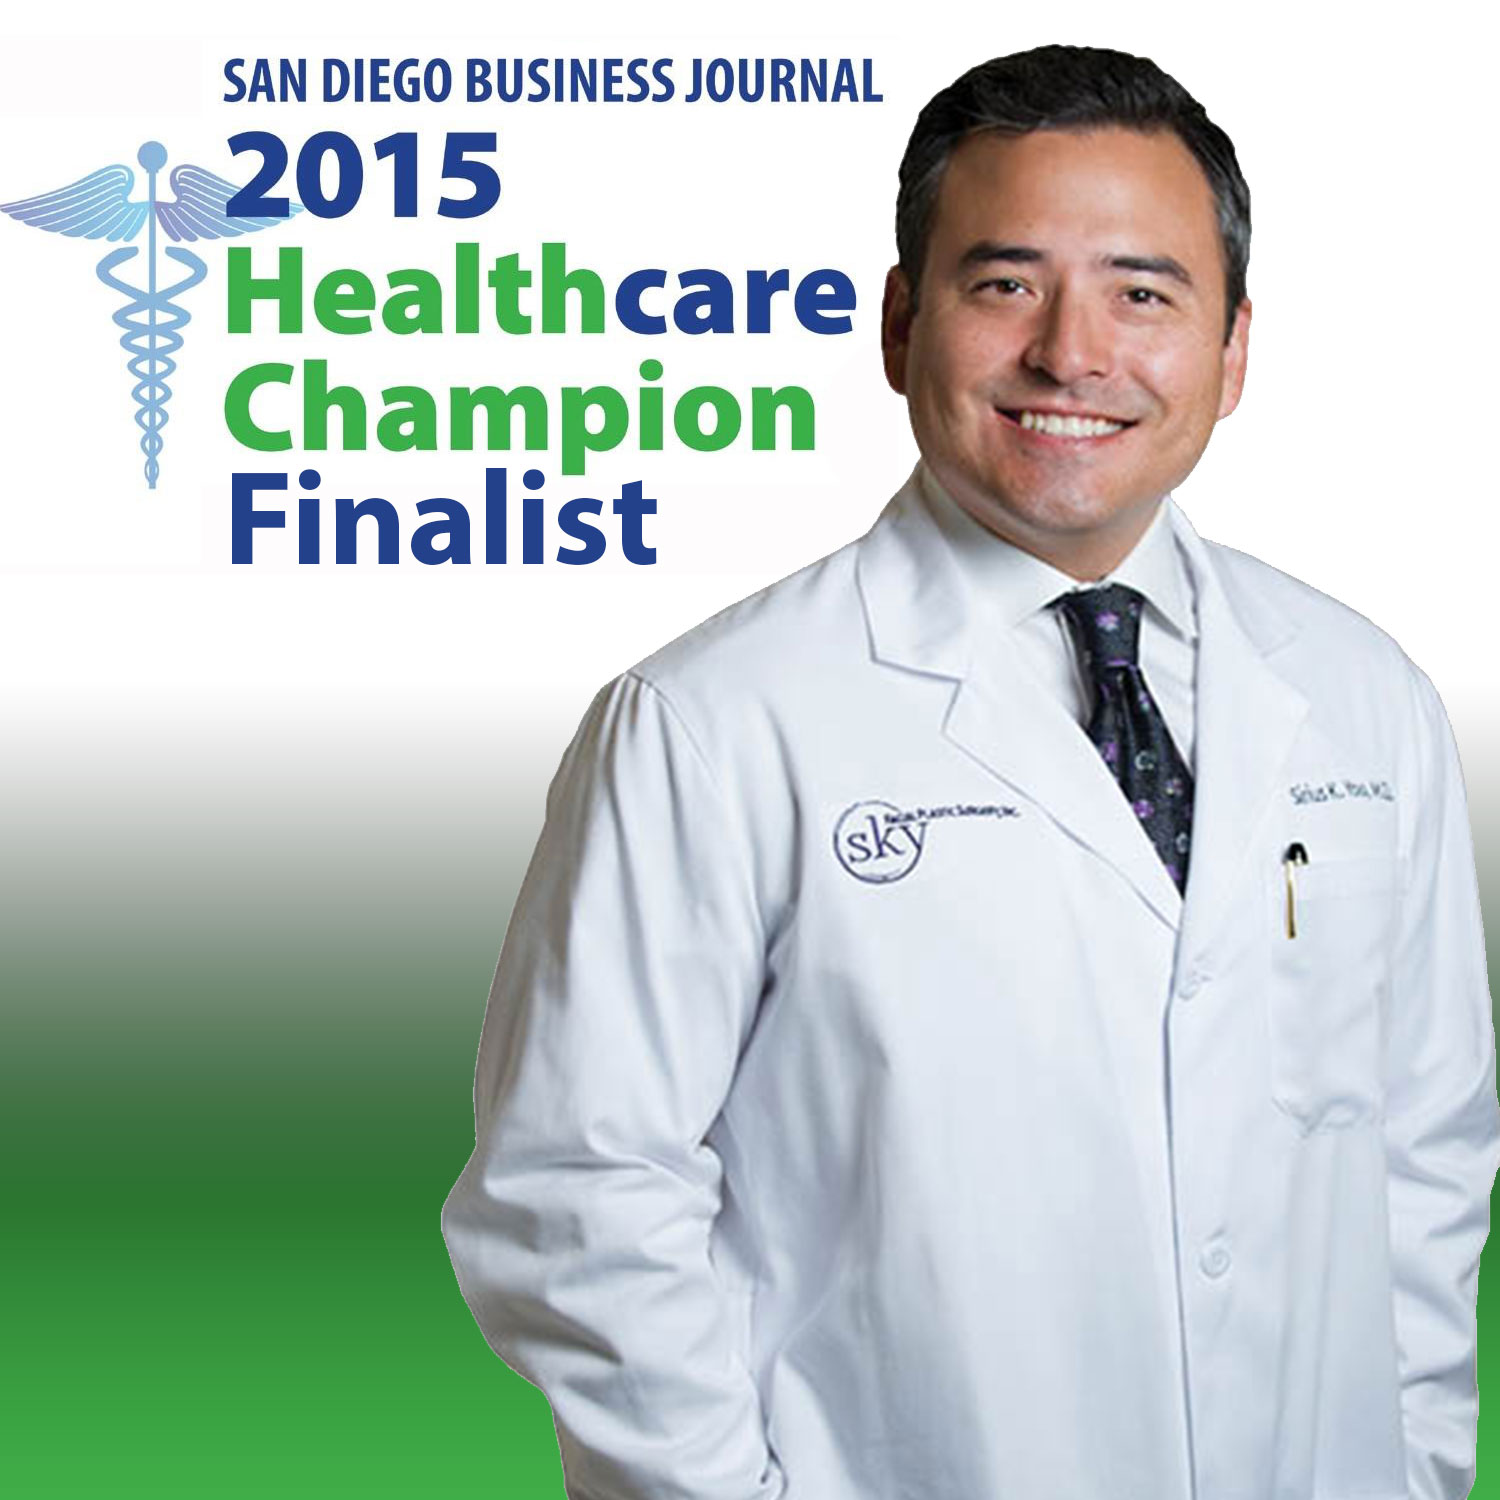 PHOTO: Sirius K. Yoo, M.D. named 2015 Healthcare Champion finalist by San Diego Business Journal